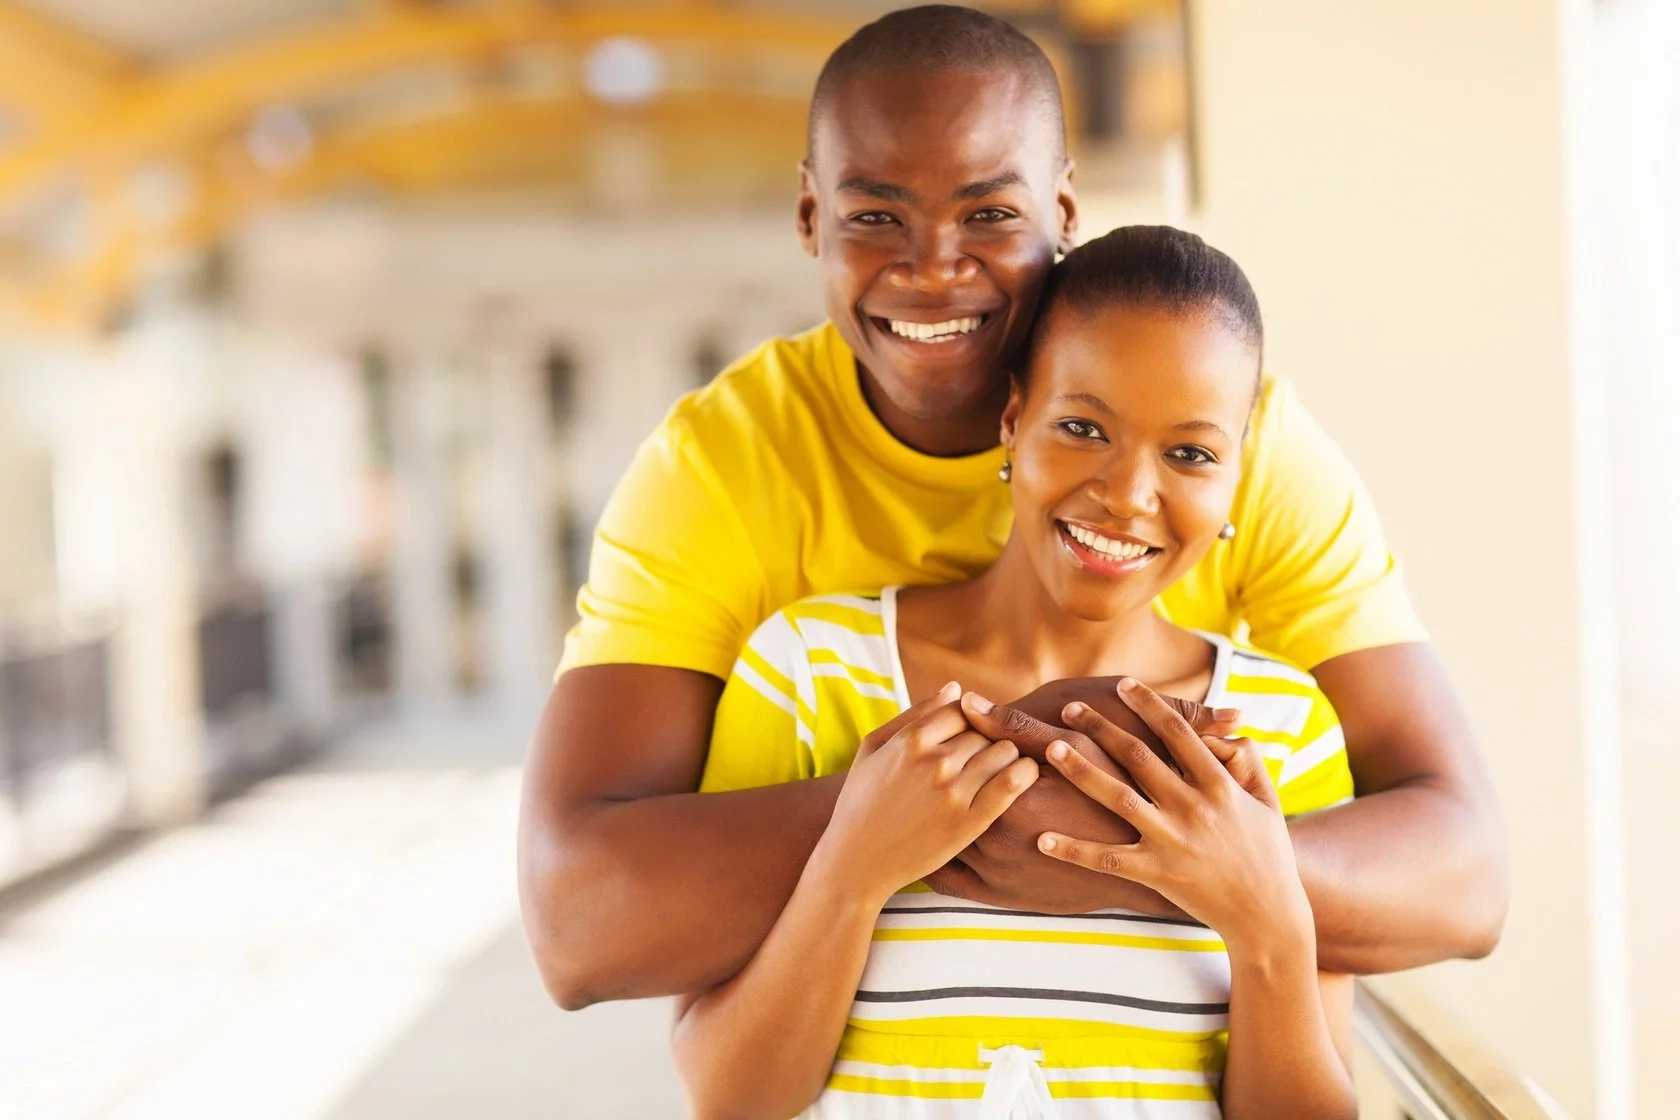 8 extremely annoying habits by women that compel their men to have side chicks